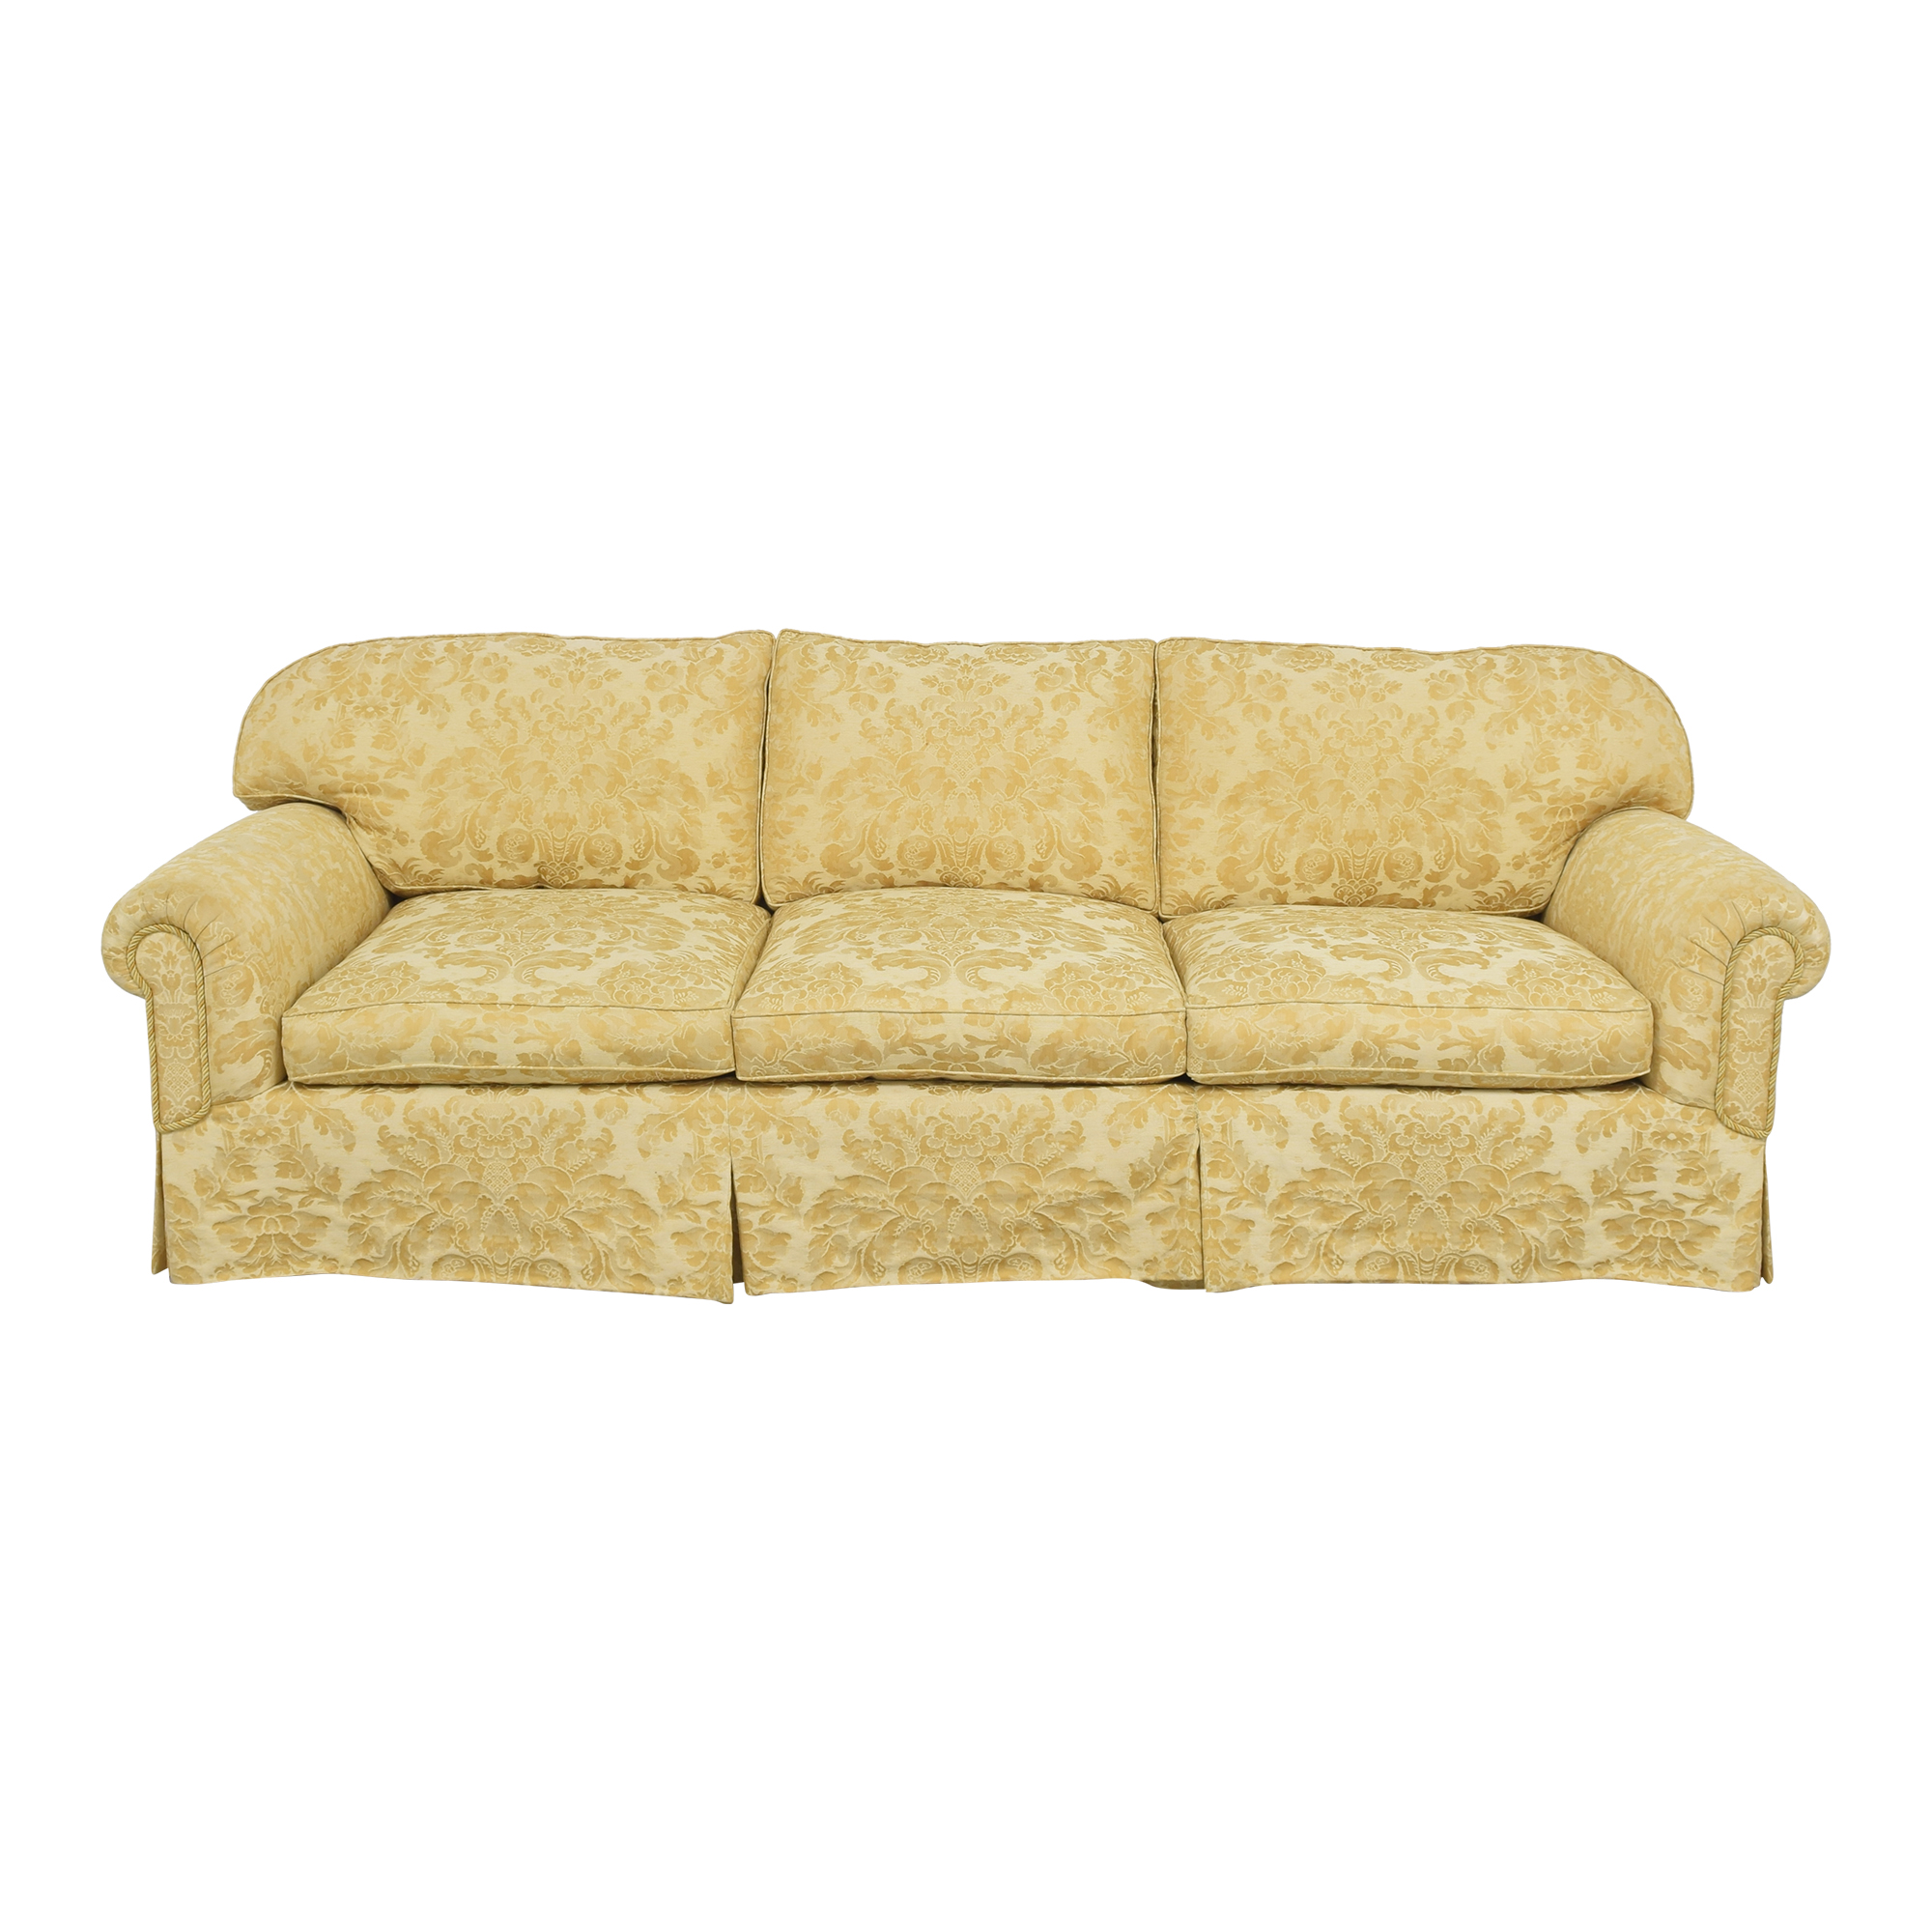 Damask Skirted Sofa dimensions